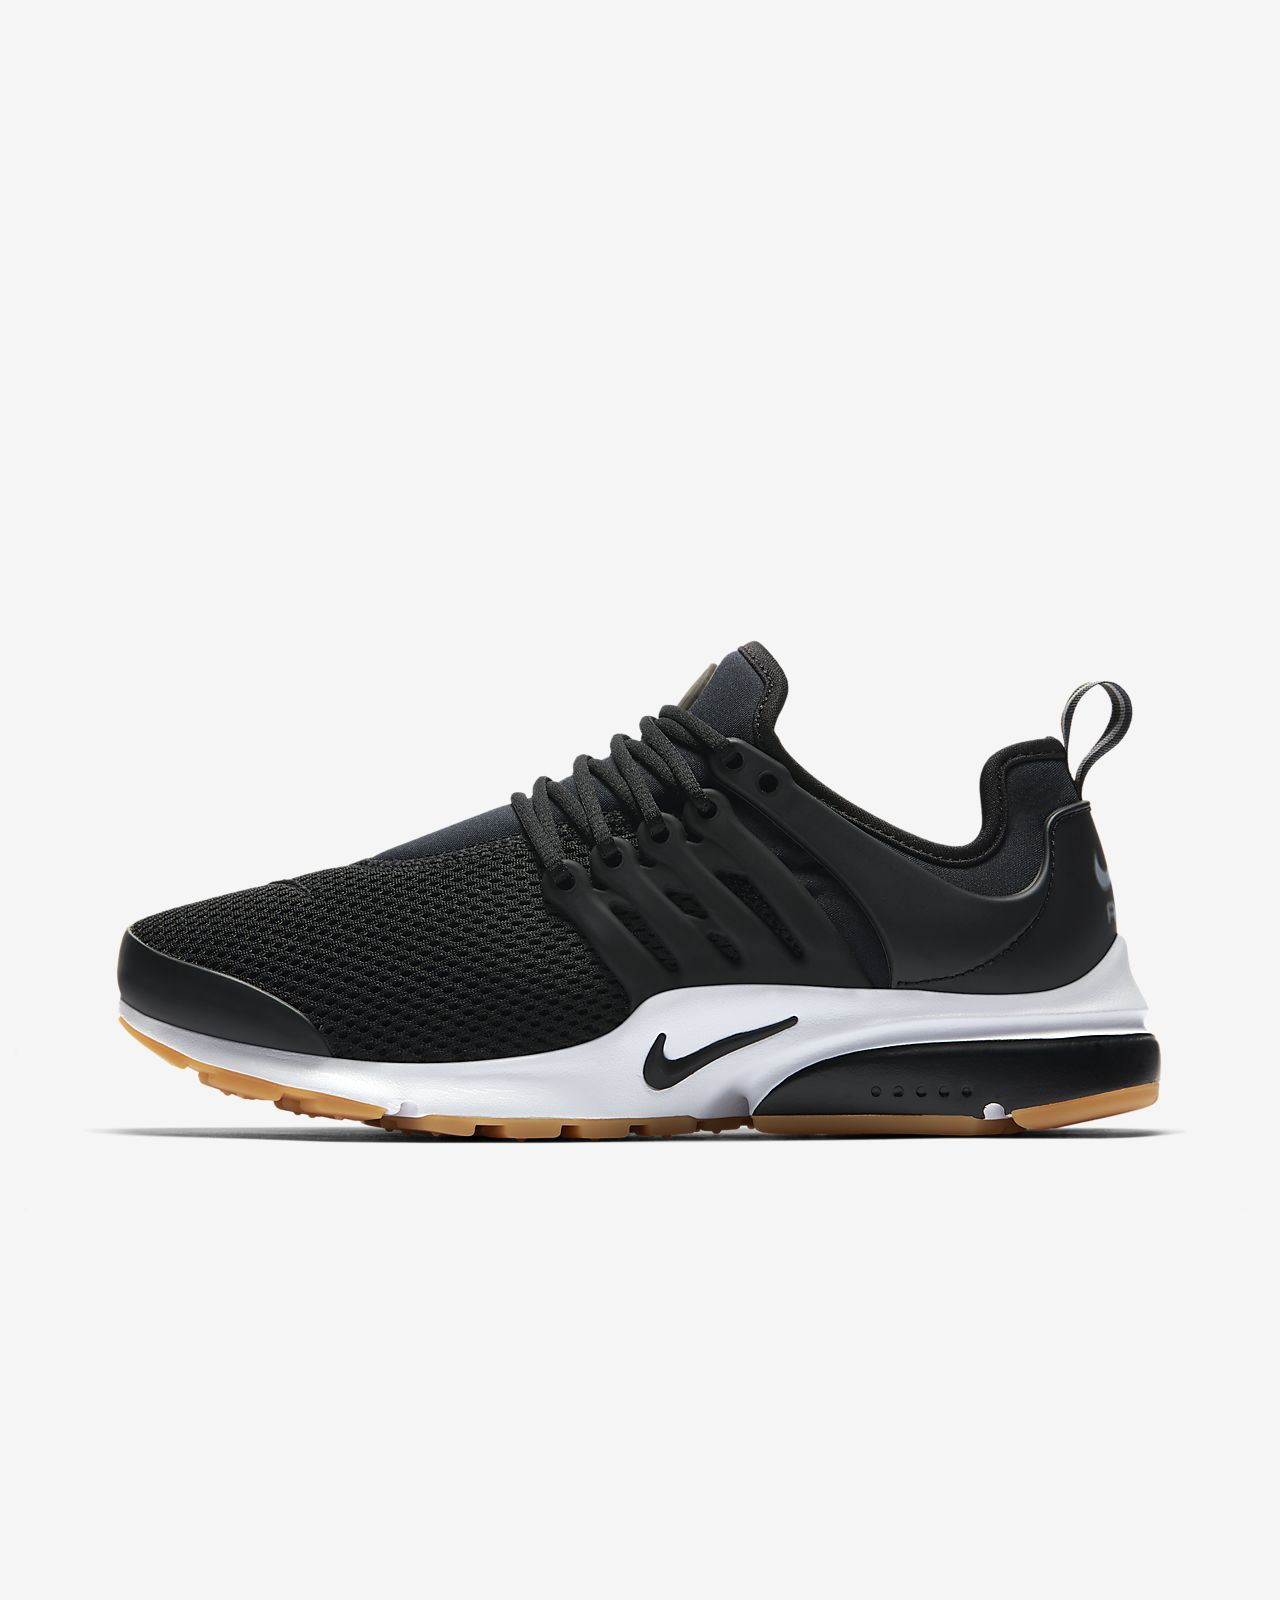 0024d53c40312 Nike Air Presto Women s Shoe. Nike.com